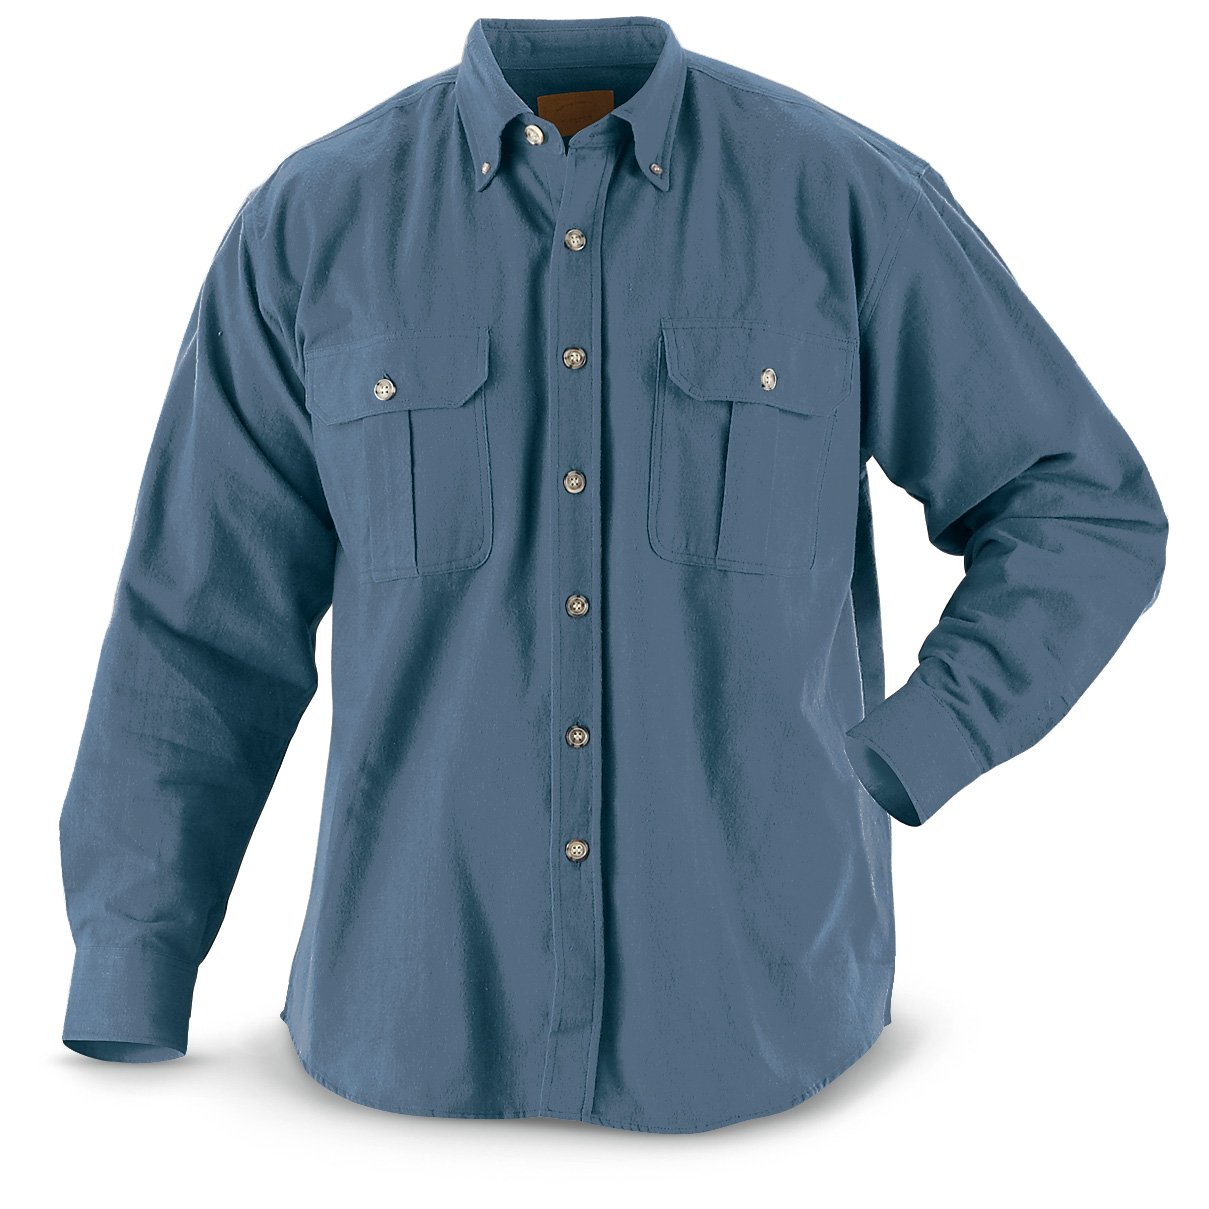 Blue chamois shirt by Wildlife